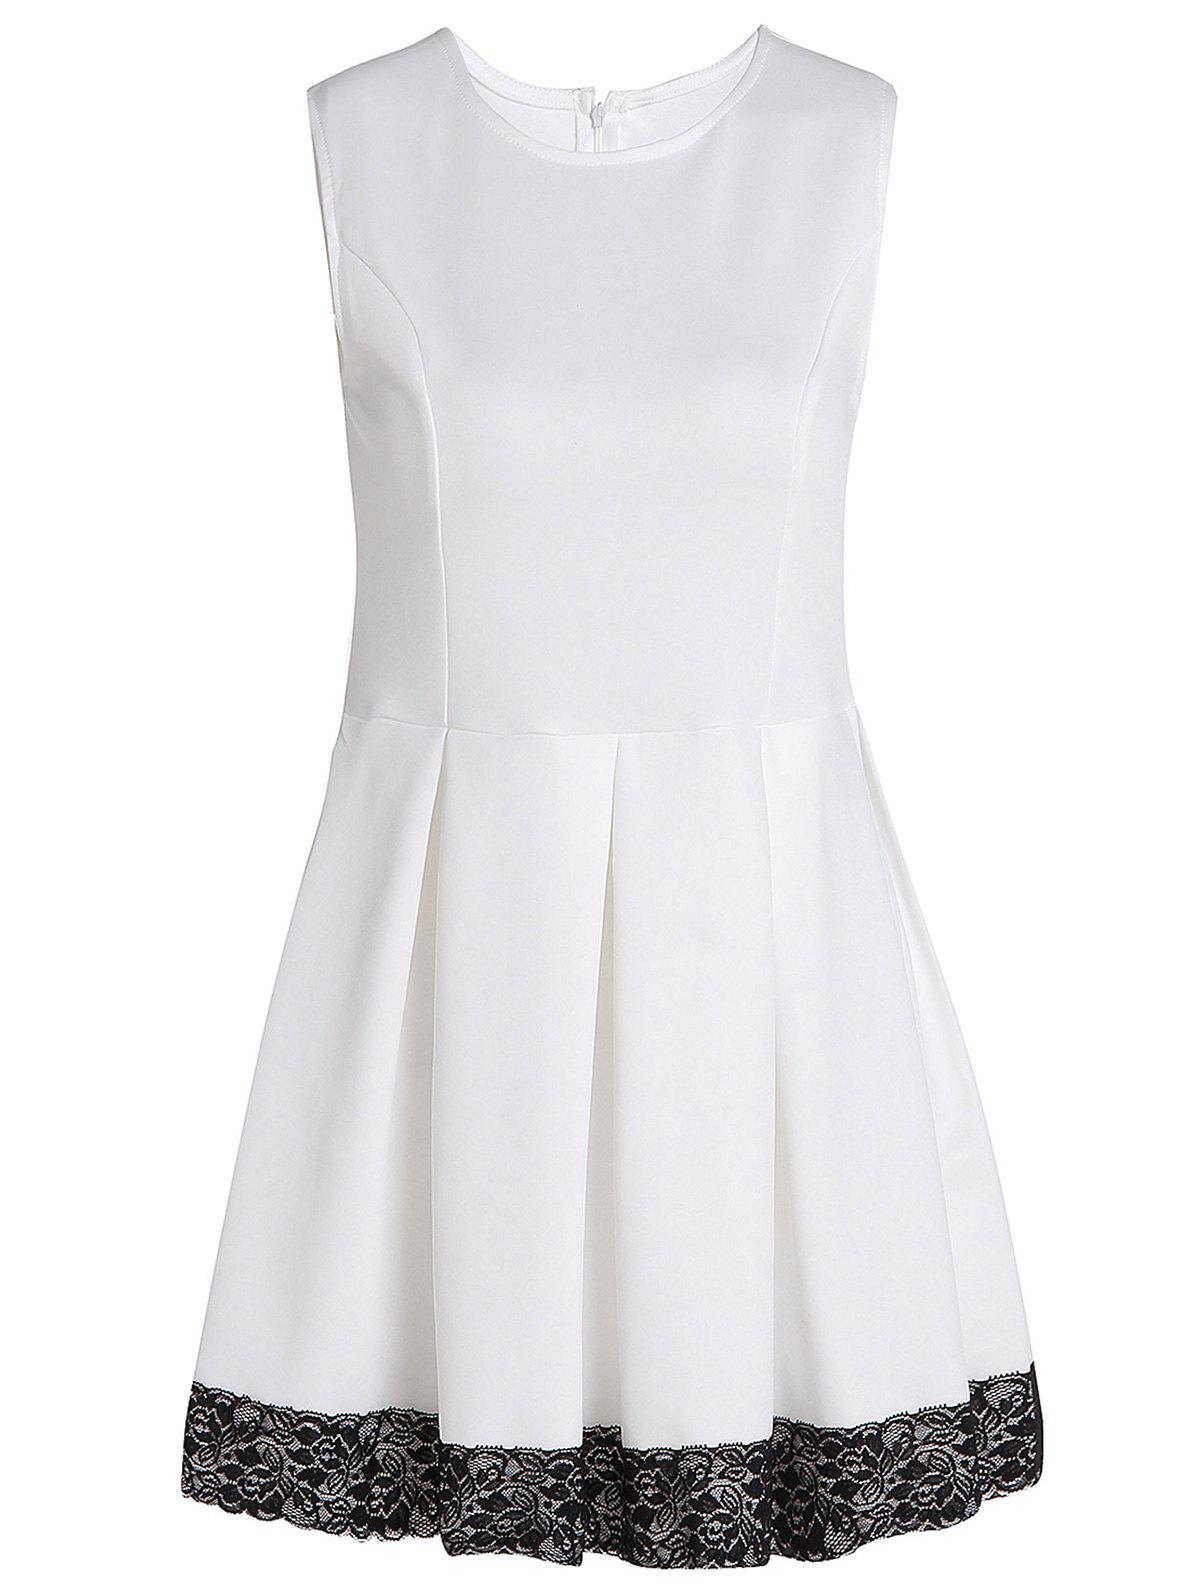 Fashionable Jewel Neck Sleeveless Lace Hem Pleated Dress For Women - WHITE XL